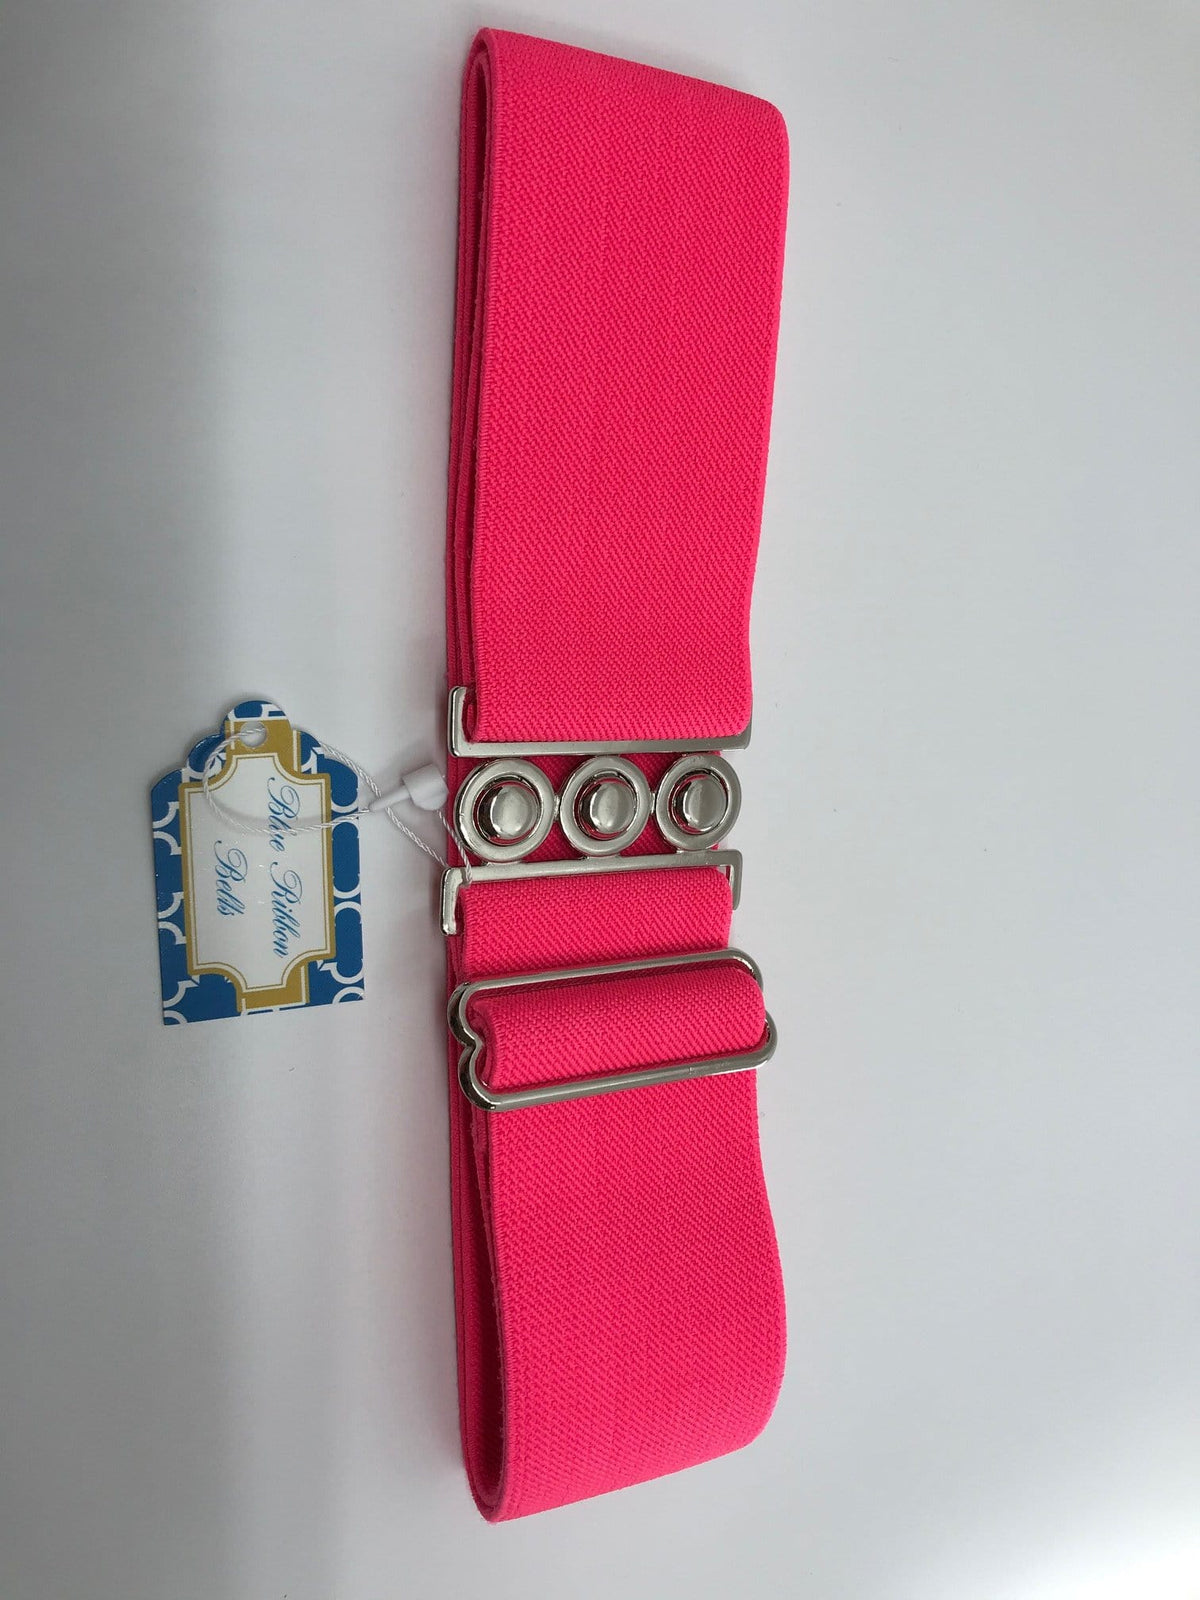 Blue Ribbon Belts Belt Bright Pink Blue Ribbon Belts - 2 Inch equestrian team apparel online tack store mobile tack store custom farm apparel custom show stable clothing equestrian lifestyle horse show clothing riding clothes horses equestrian tack store